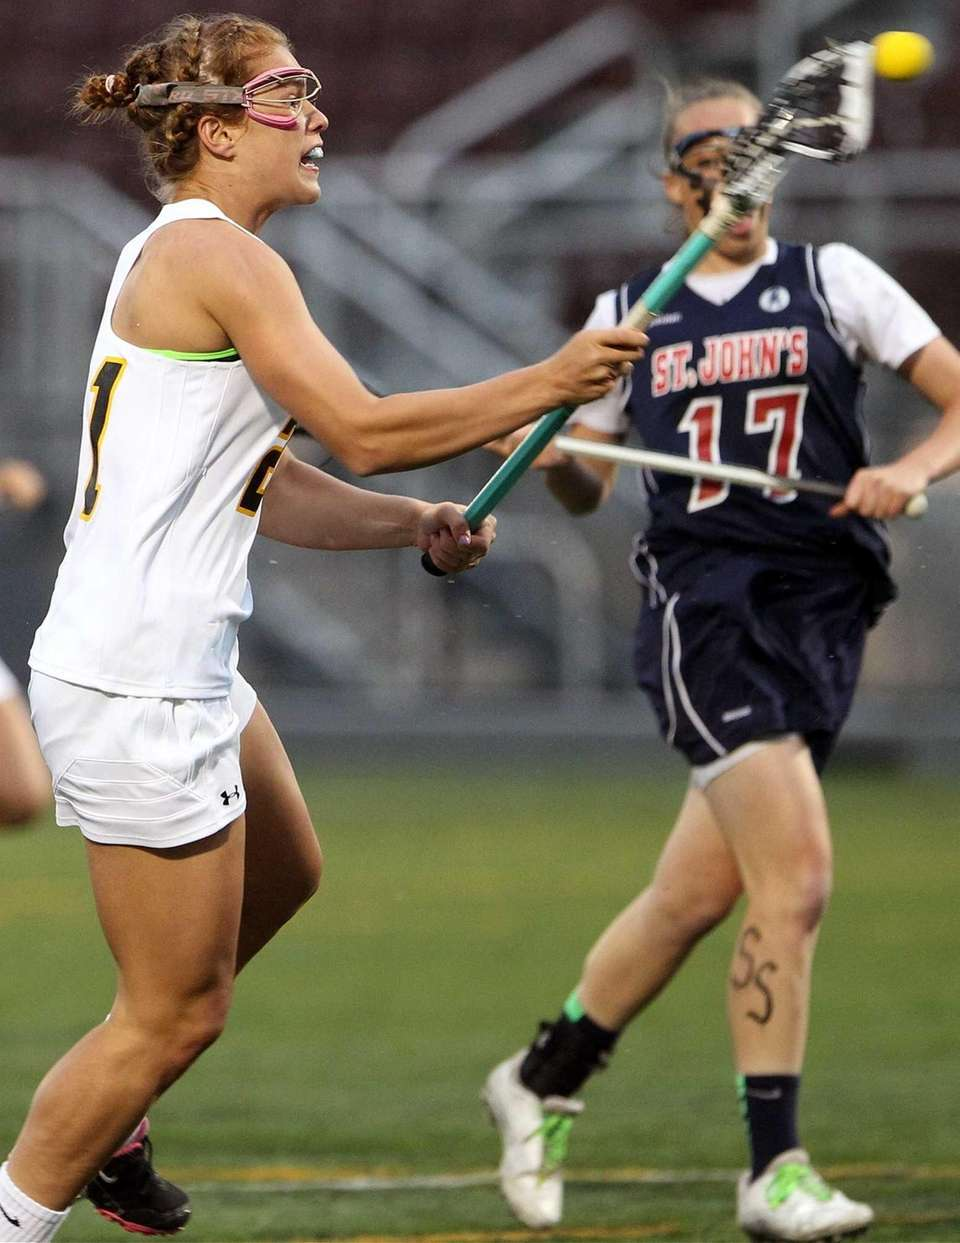 St. Anthony's Kasey Behr fires on goal during